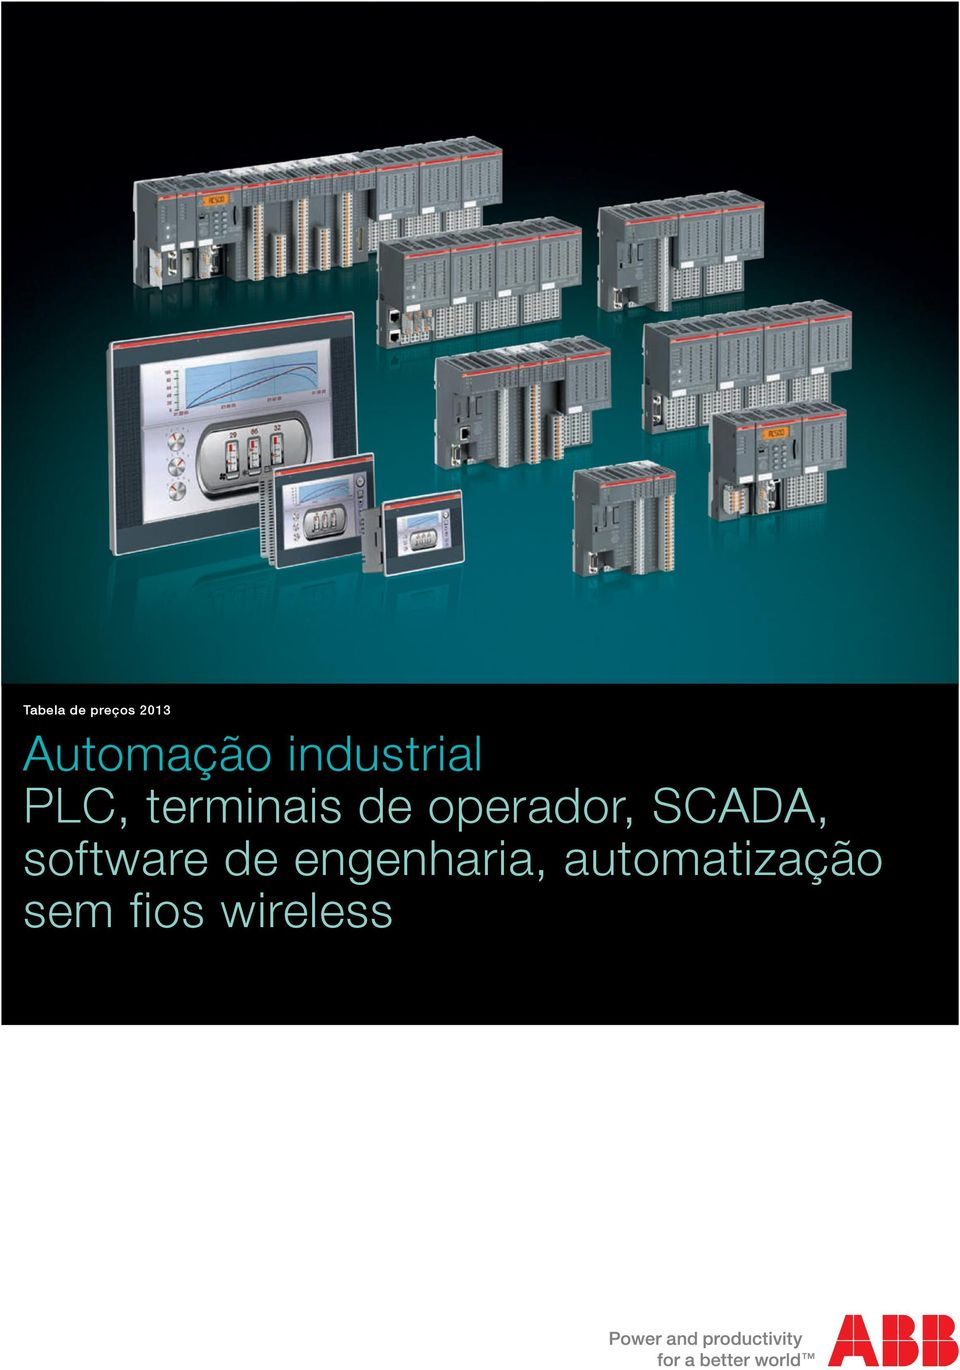 operador, SCADA, software de